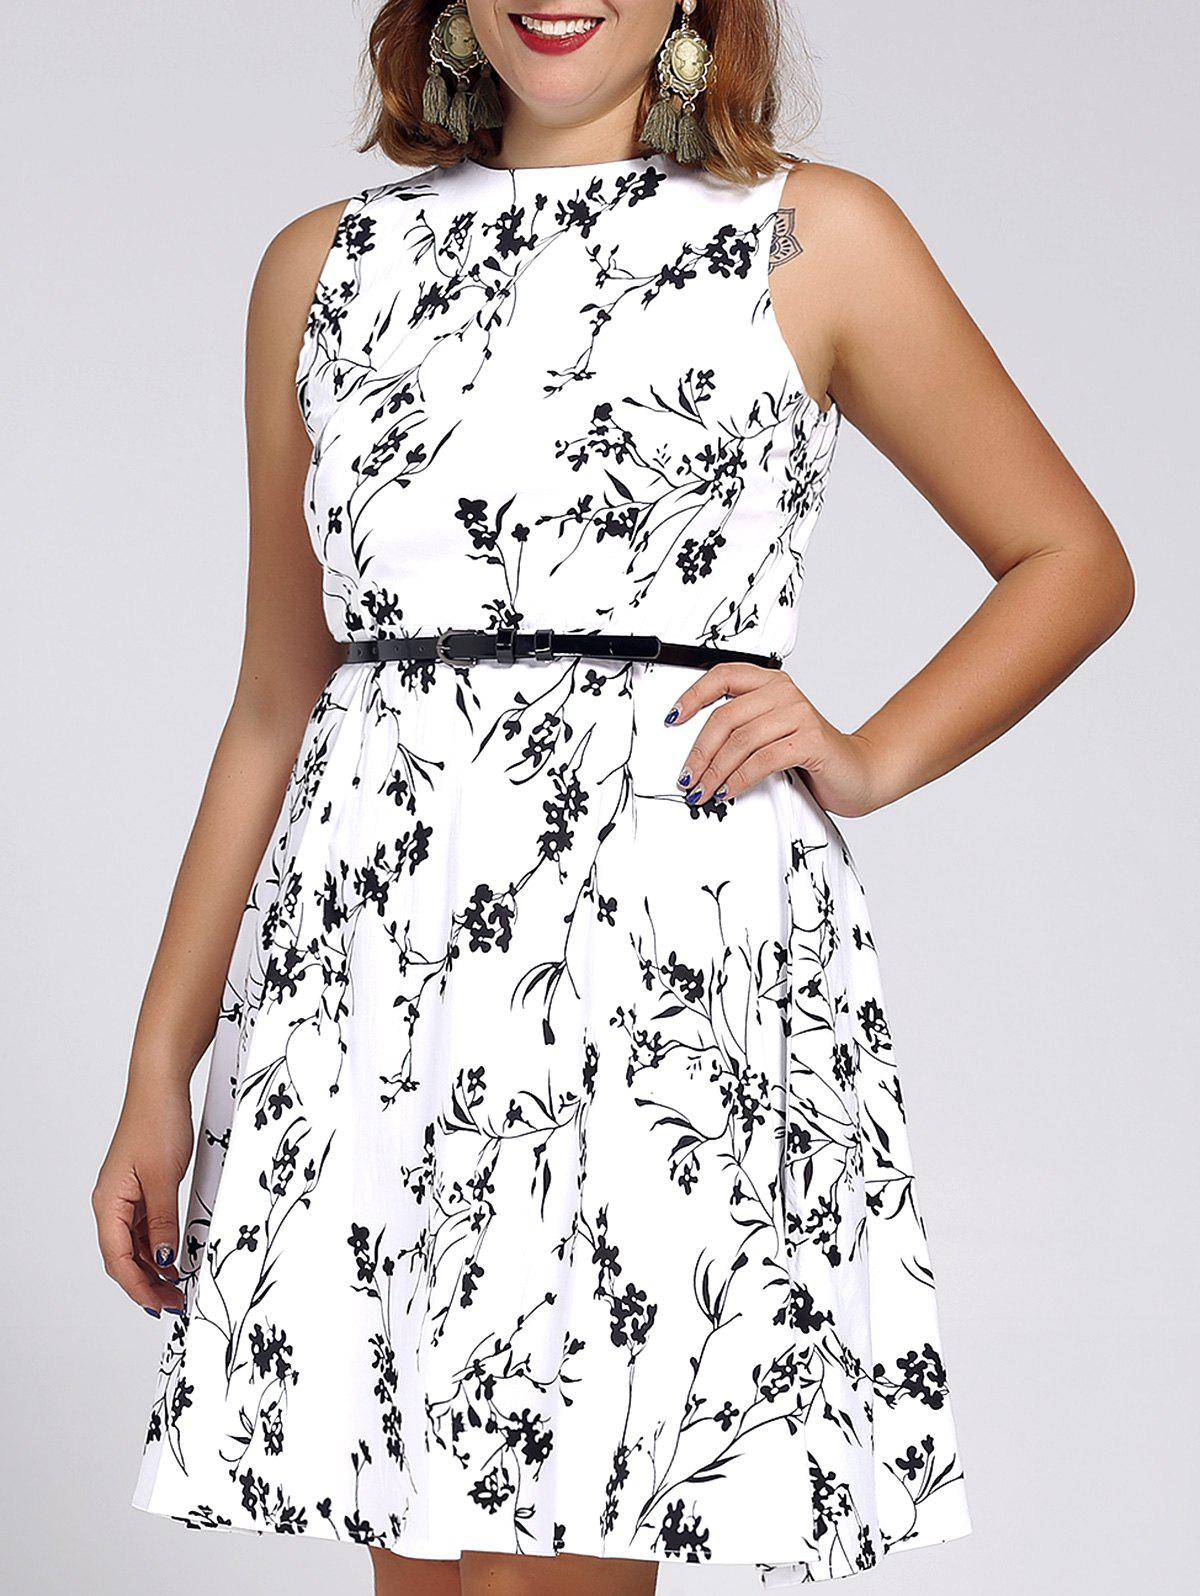 Stylish Round Neck Sleeveless Floral Print Dress For Women - WHITE 4XL